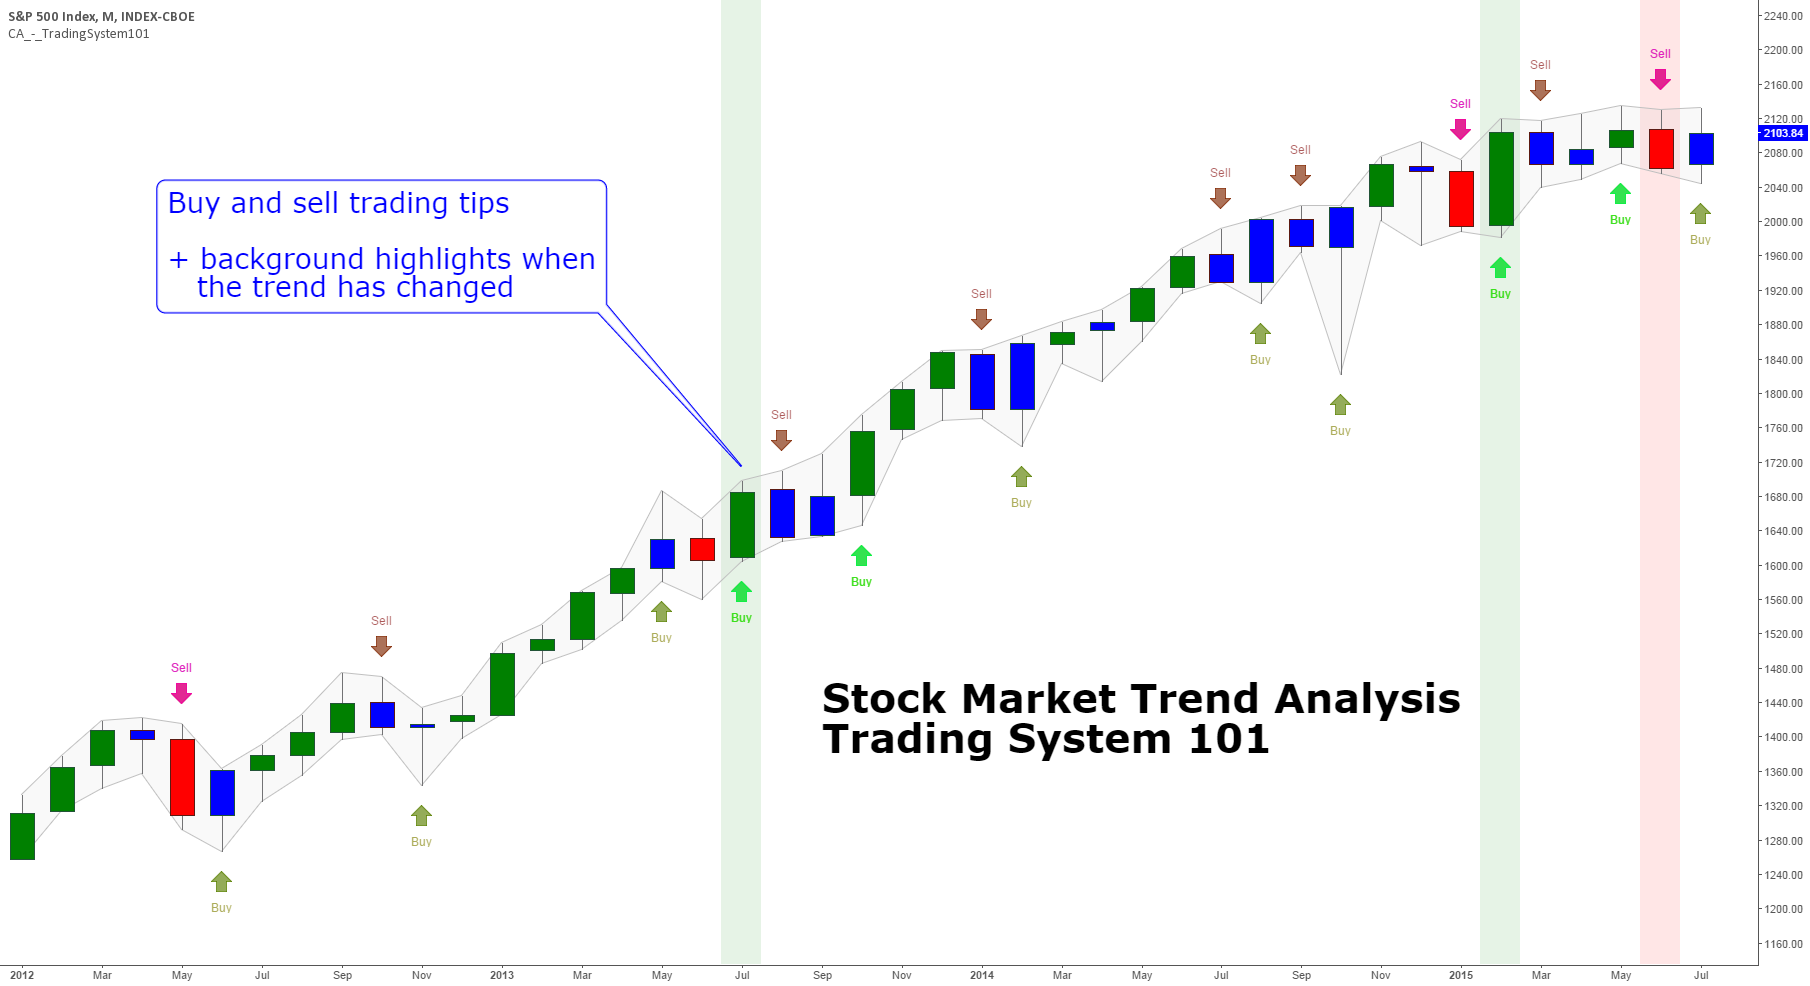 Stock Market Trend Analysis Trading System 101 (by ChartArt)